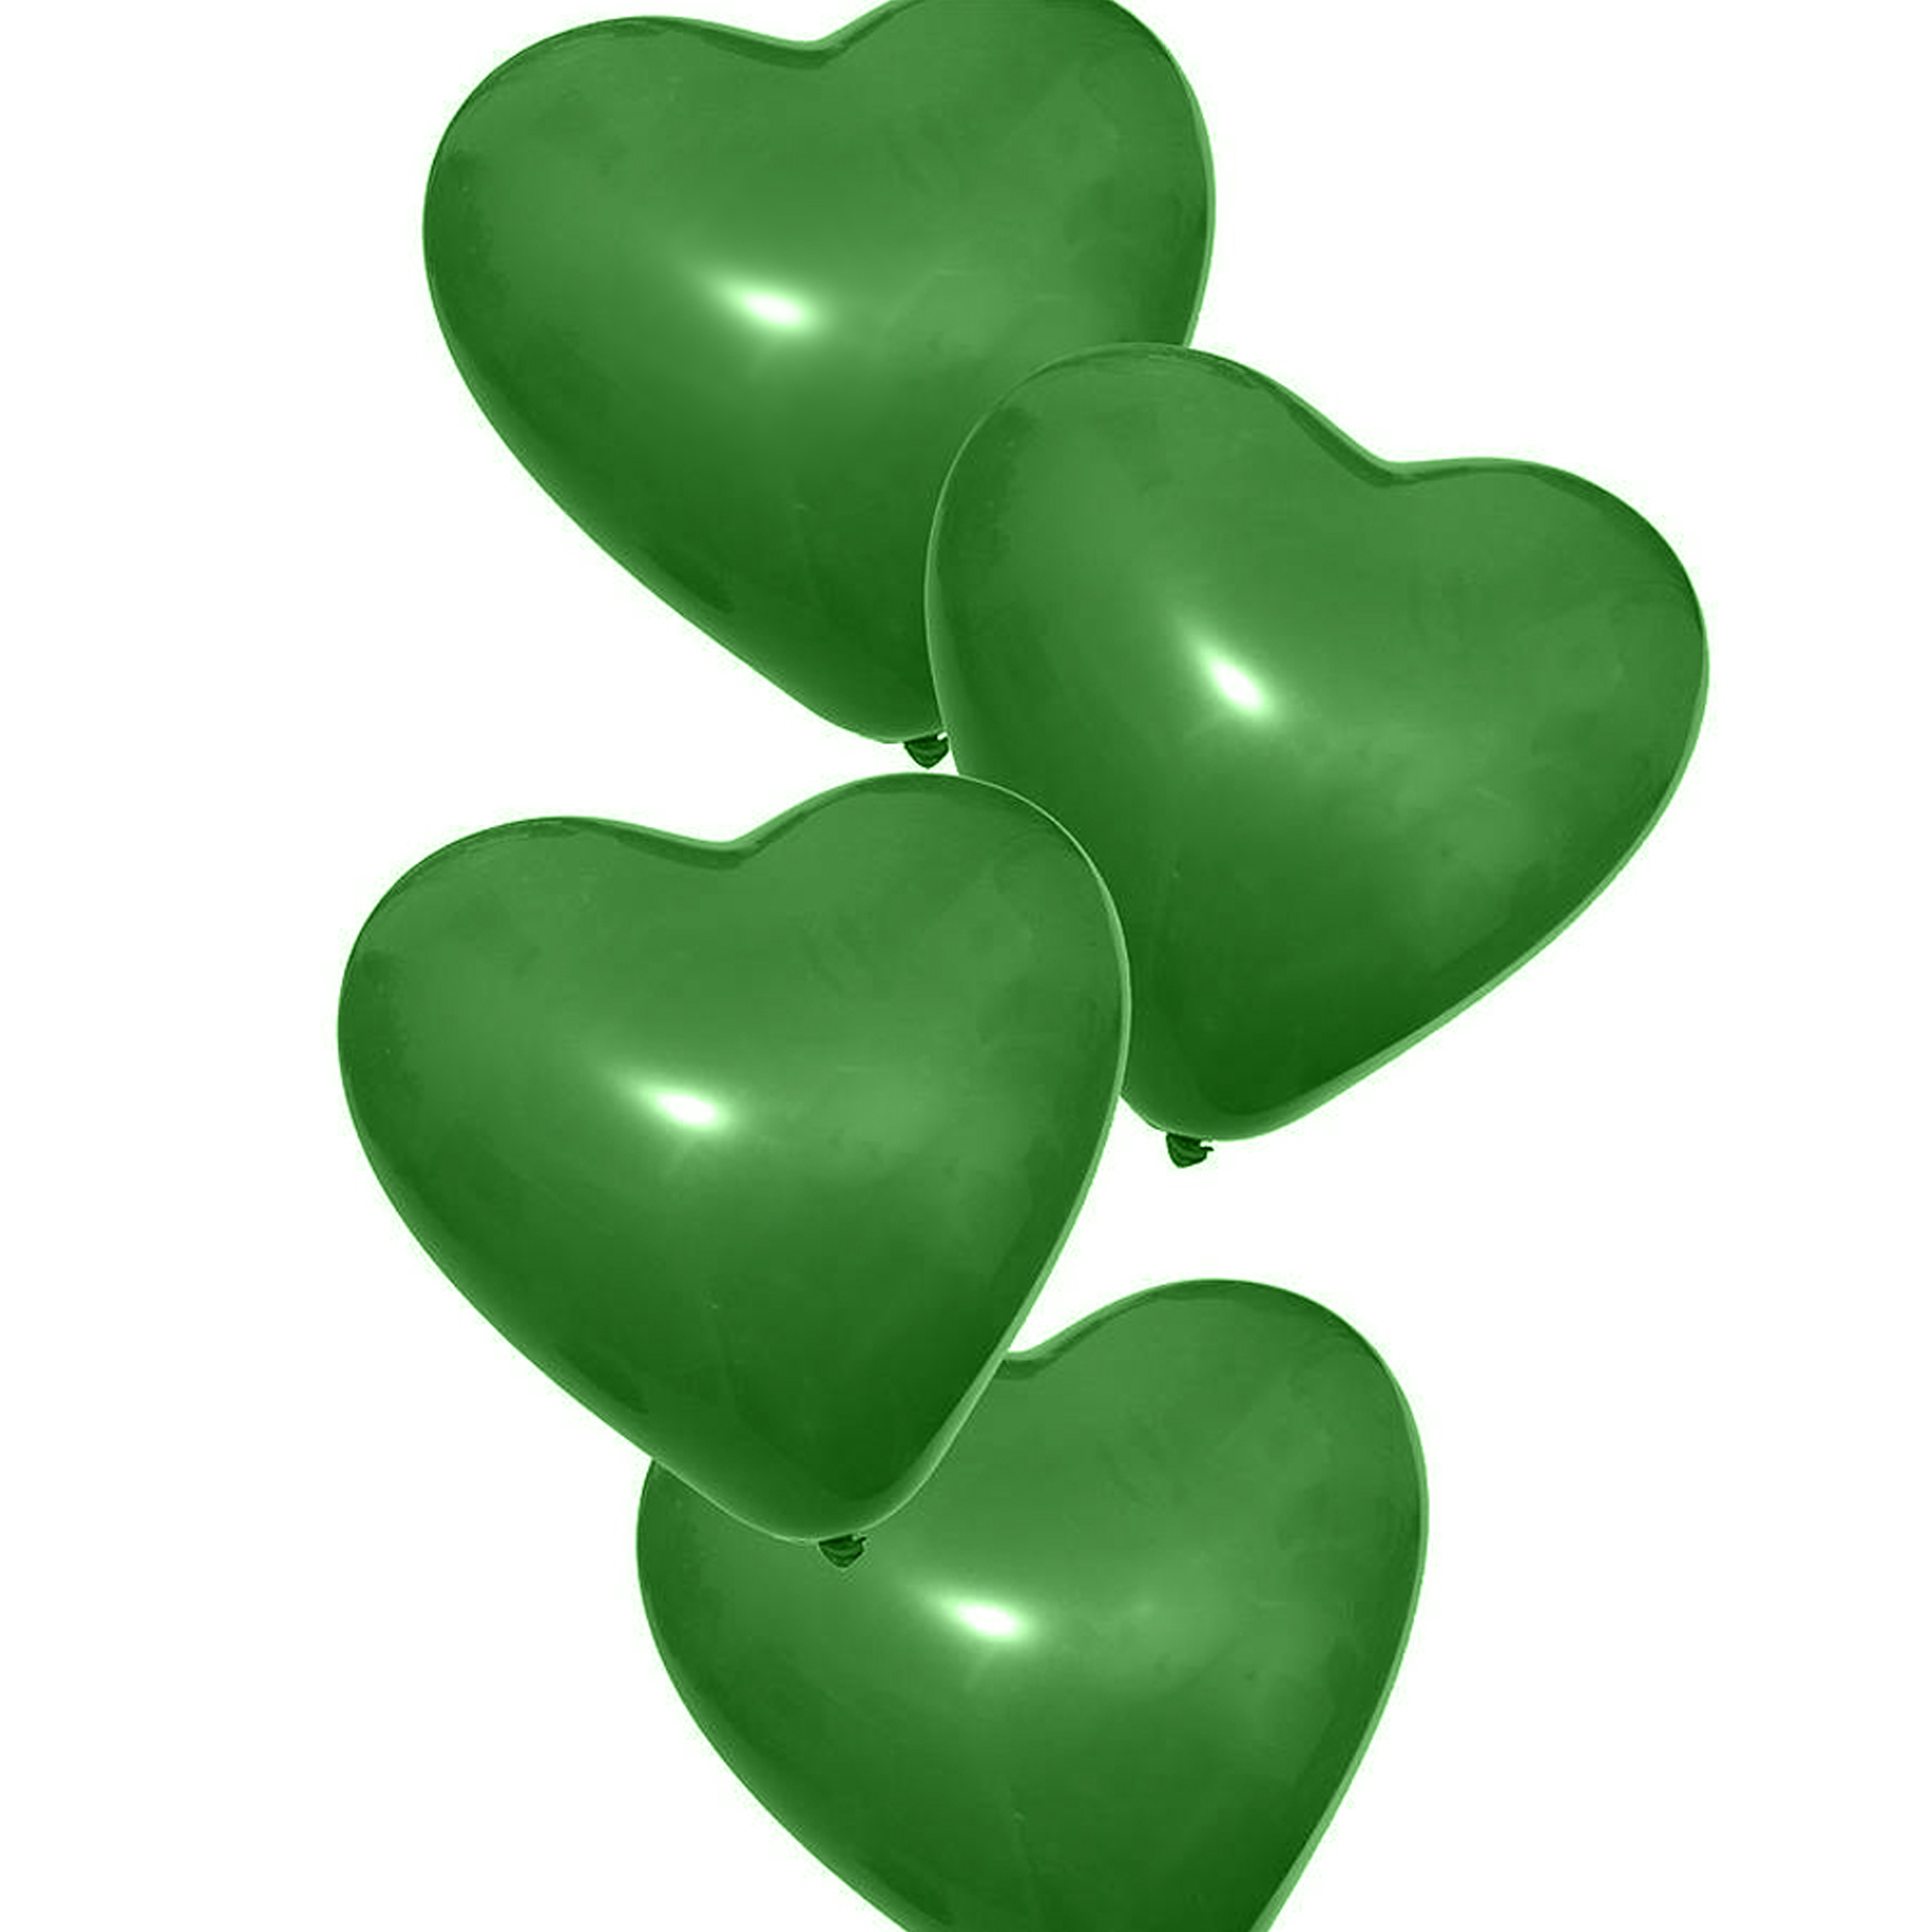 100pcs, The Elixir Party Heart Balloons 100% Latex Helium Quality Heart Shape Balloon for Party Balloons, Green